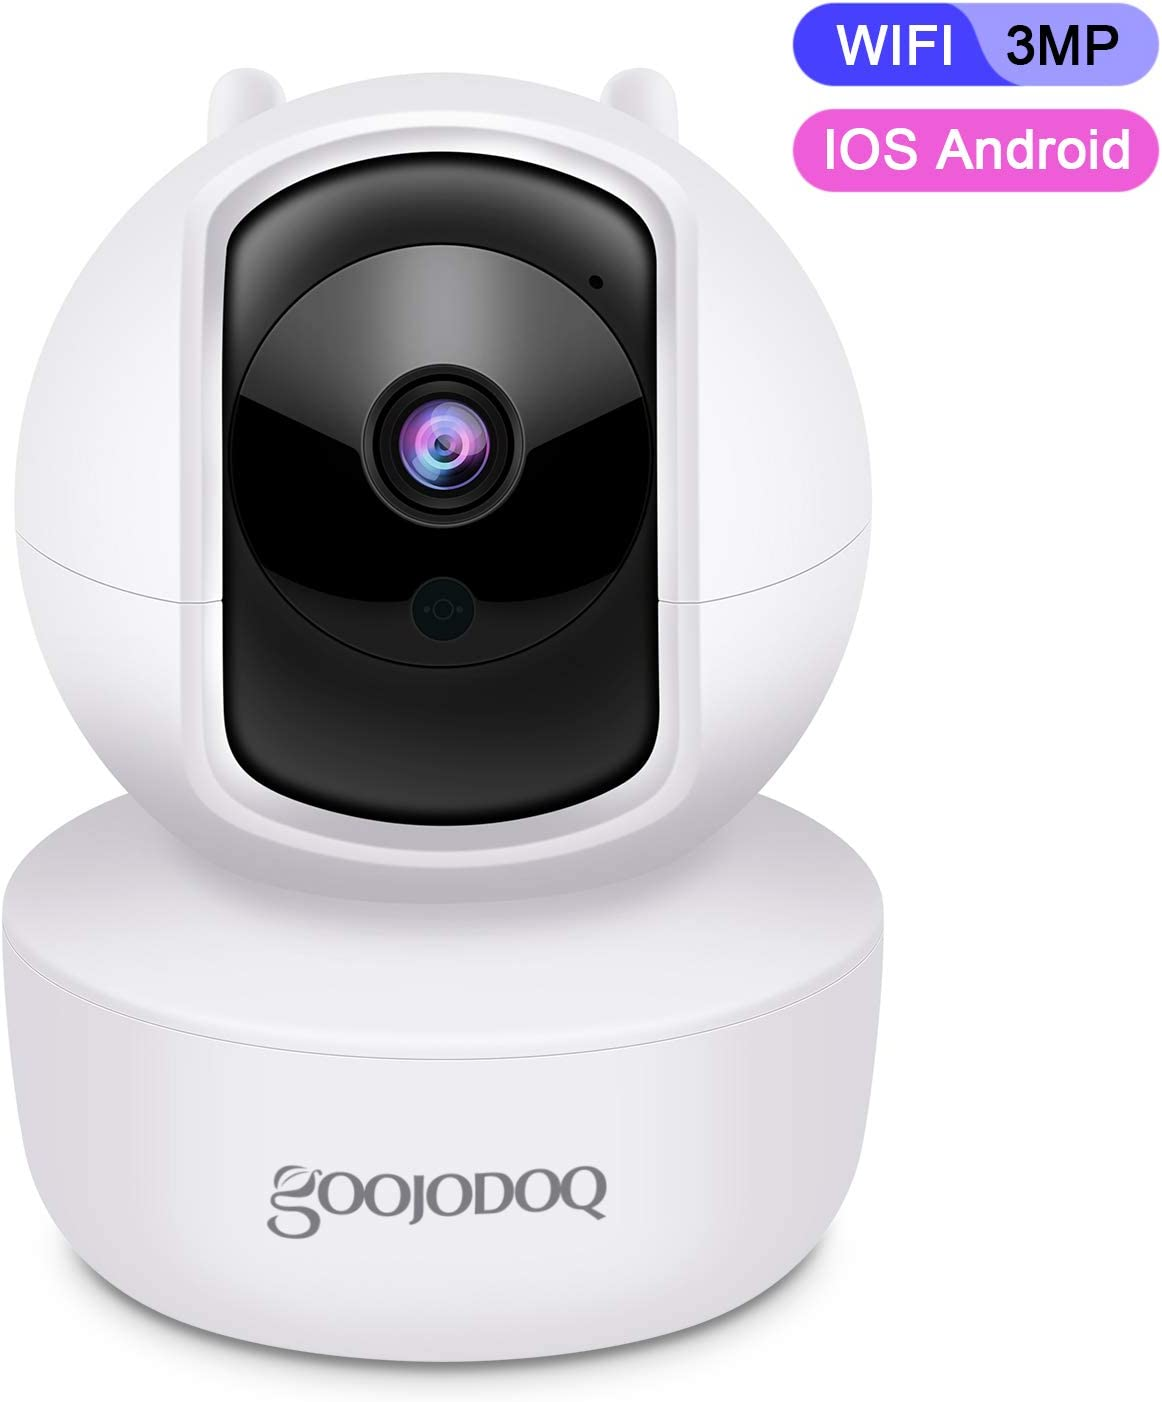 WiFi Security Camera, Goojodoq 3MP HD Security Camera with Auto-Cruise, Two-Way Audio Baby Pets Monitor, Motion Detection Alert, Surveillance Camera, Support iOS, Android, Video Monitor White